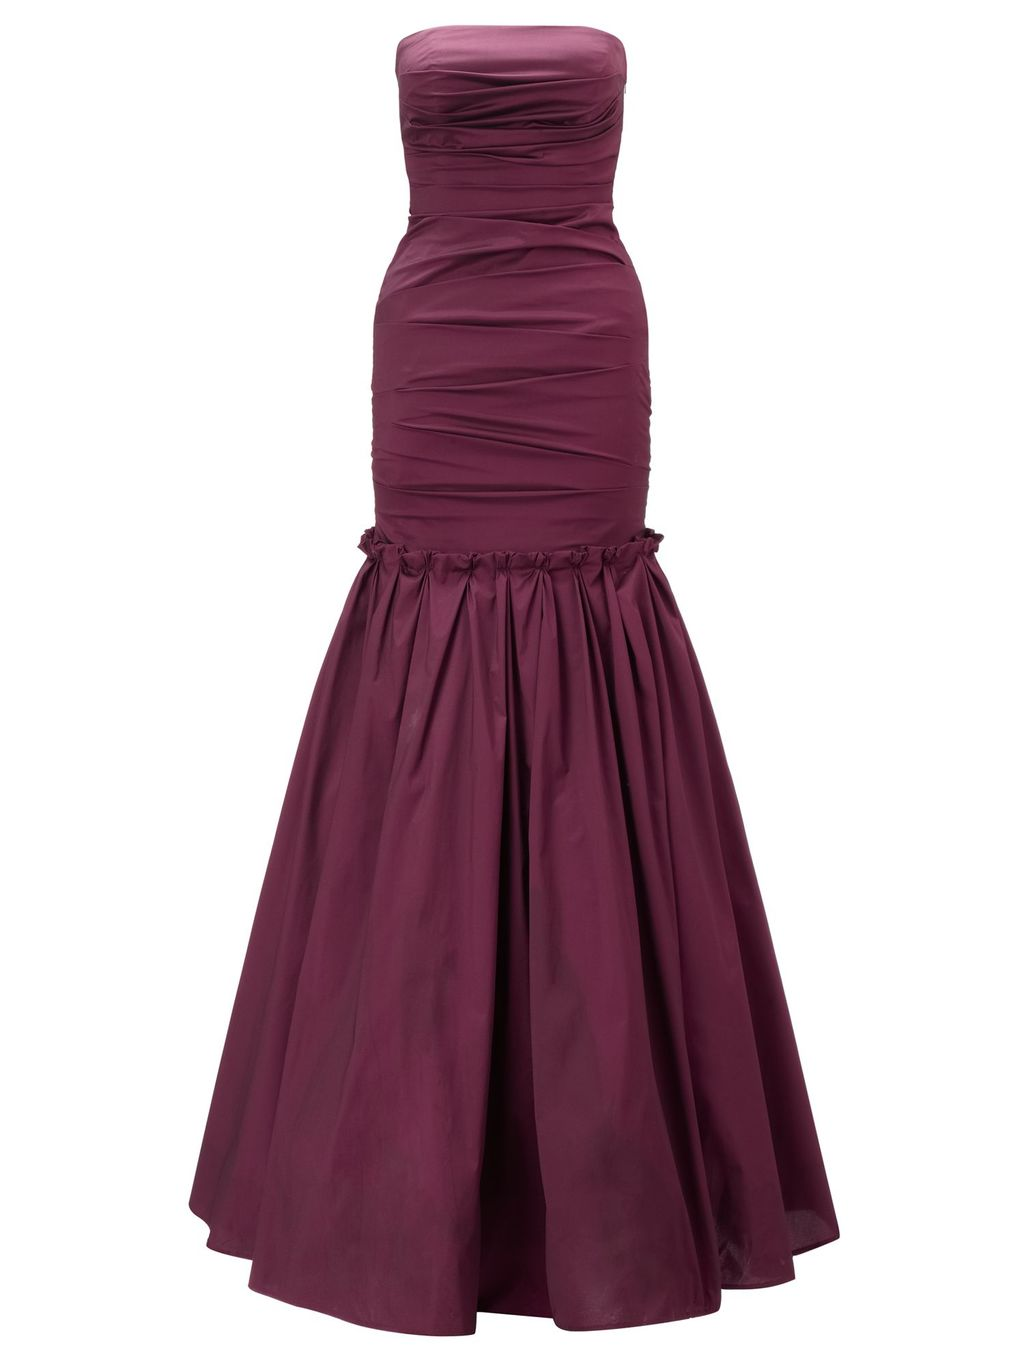 Burgundy Marilea Strapless Long Gown, Burgundy - style: ballgown; neckline: strapless (straight/sweetheart); fit: tailored/fitted; pattern: plain; sleeve style: strapless; waist detail: twist front waist detail/nipped in at waist on one side/soft pleats/draping/ruching/gathering waist detail; bust detail: ruching/gathering/draping/layers/pintuck pleats at bust; predominant colour: burgundy; occasions: evening, occasion; length: floor length; fibres: polyester/polyamide - stretch; hip detail: structured pleats at hip; sleeve length: sleeveless; texture group: structured shiny - satin/tafetta/silk etc.; pattern type: fabric; season: a/w 2014; wardrobe: event